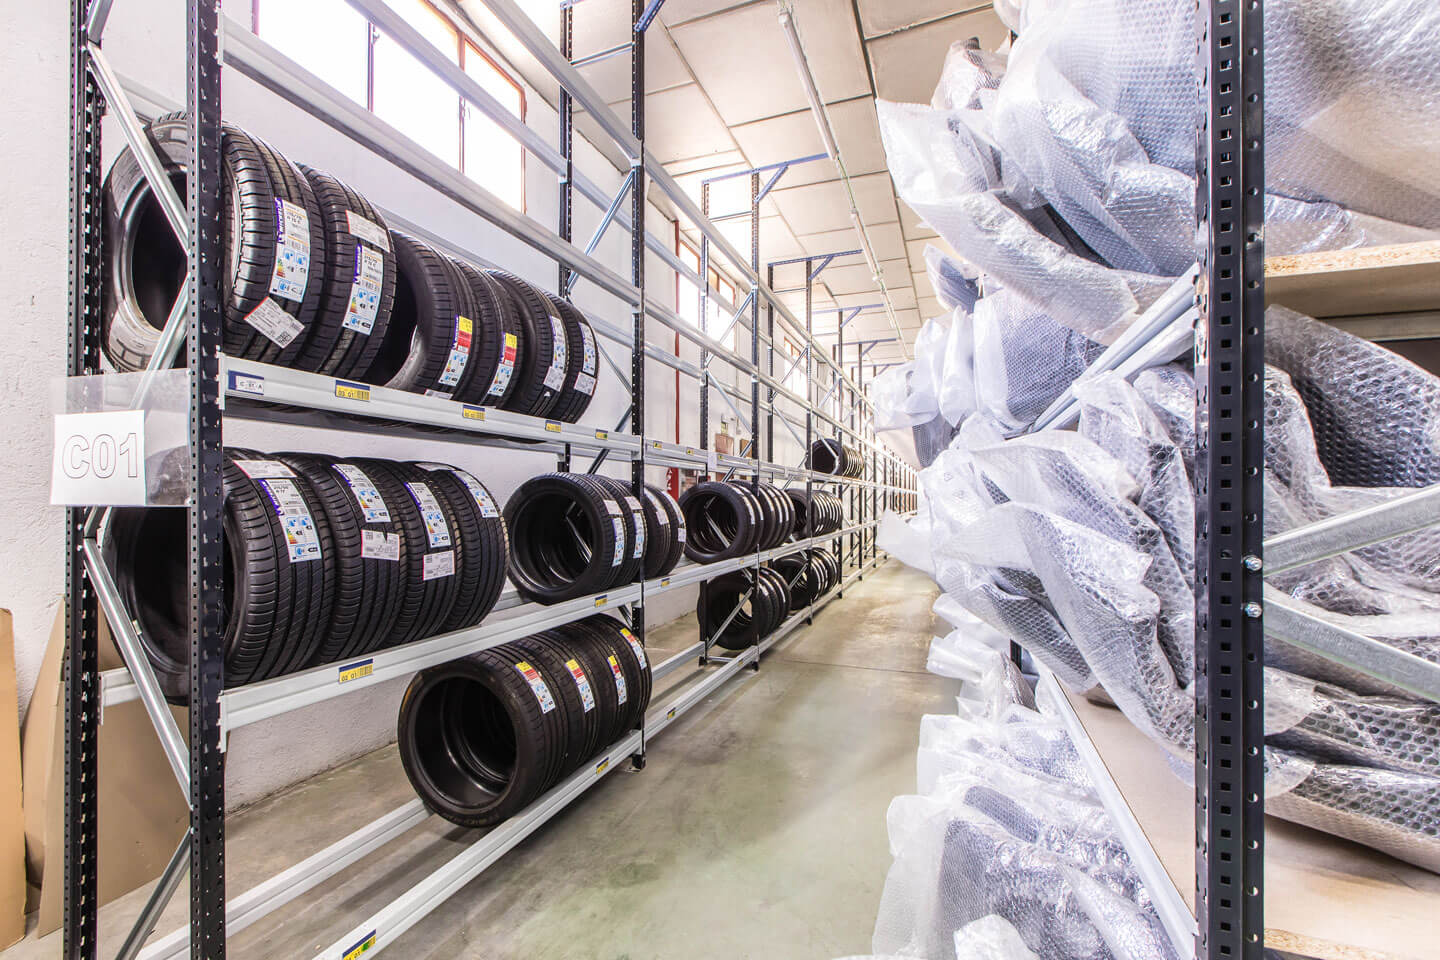 Medium duty with tires | POLYPAL STORAGE SYSTEMS